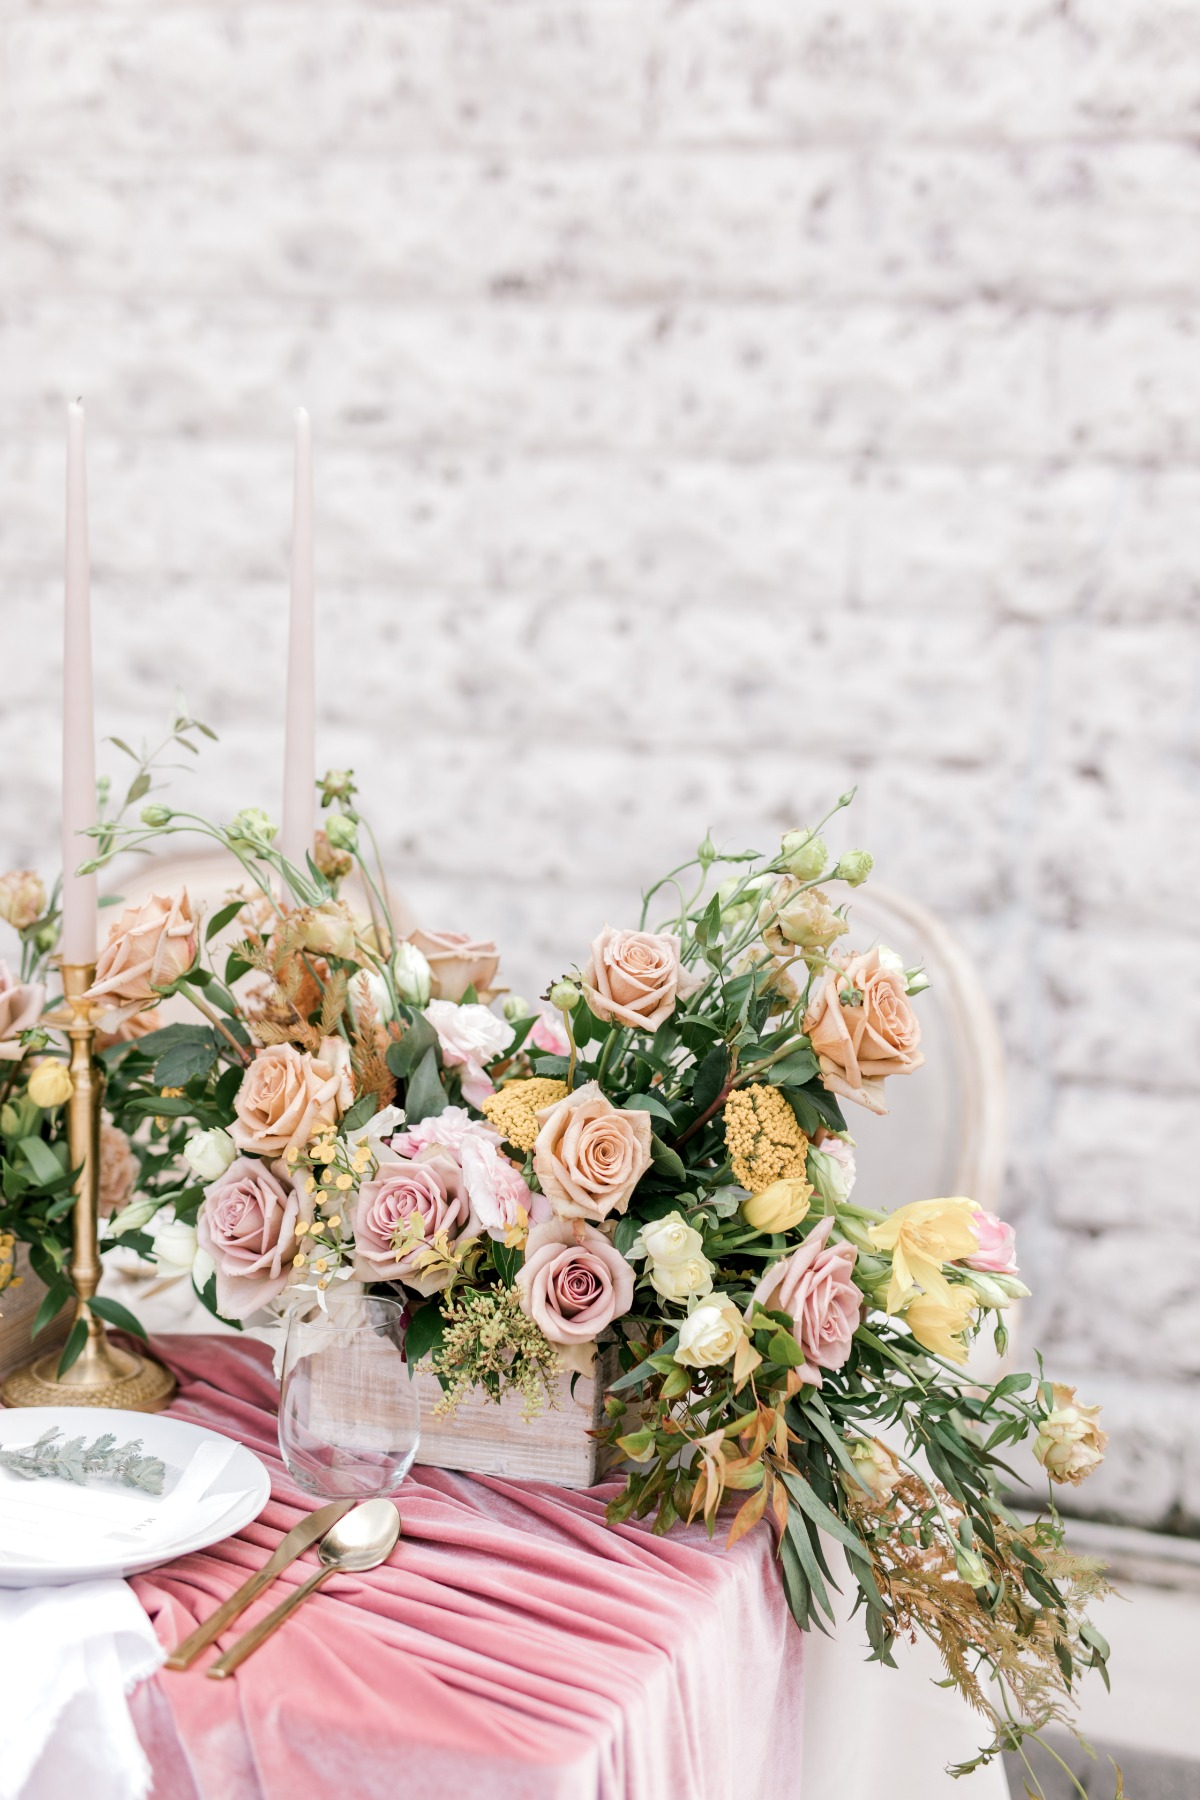 How To Have A Soft Pink And Gold Autumn Wedding